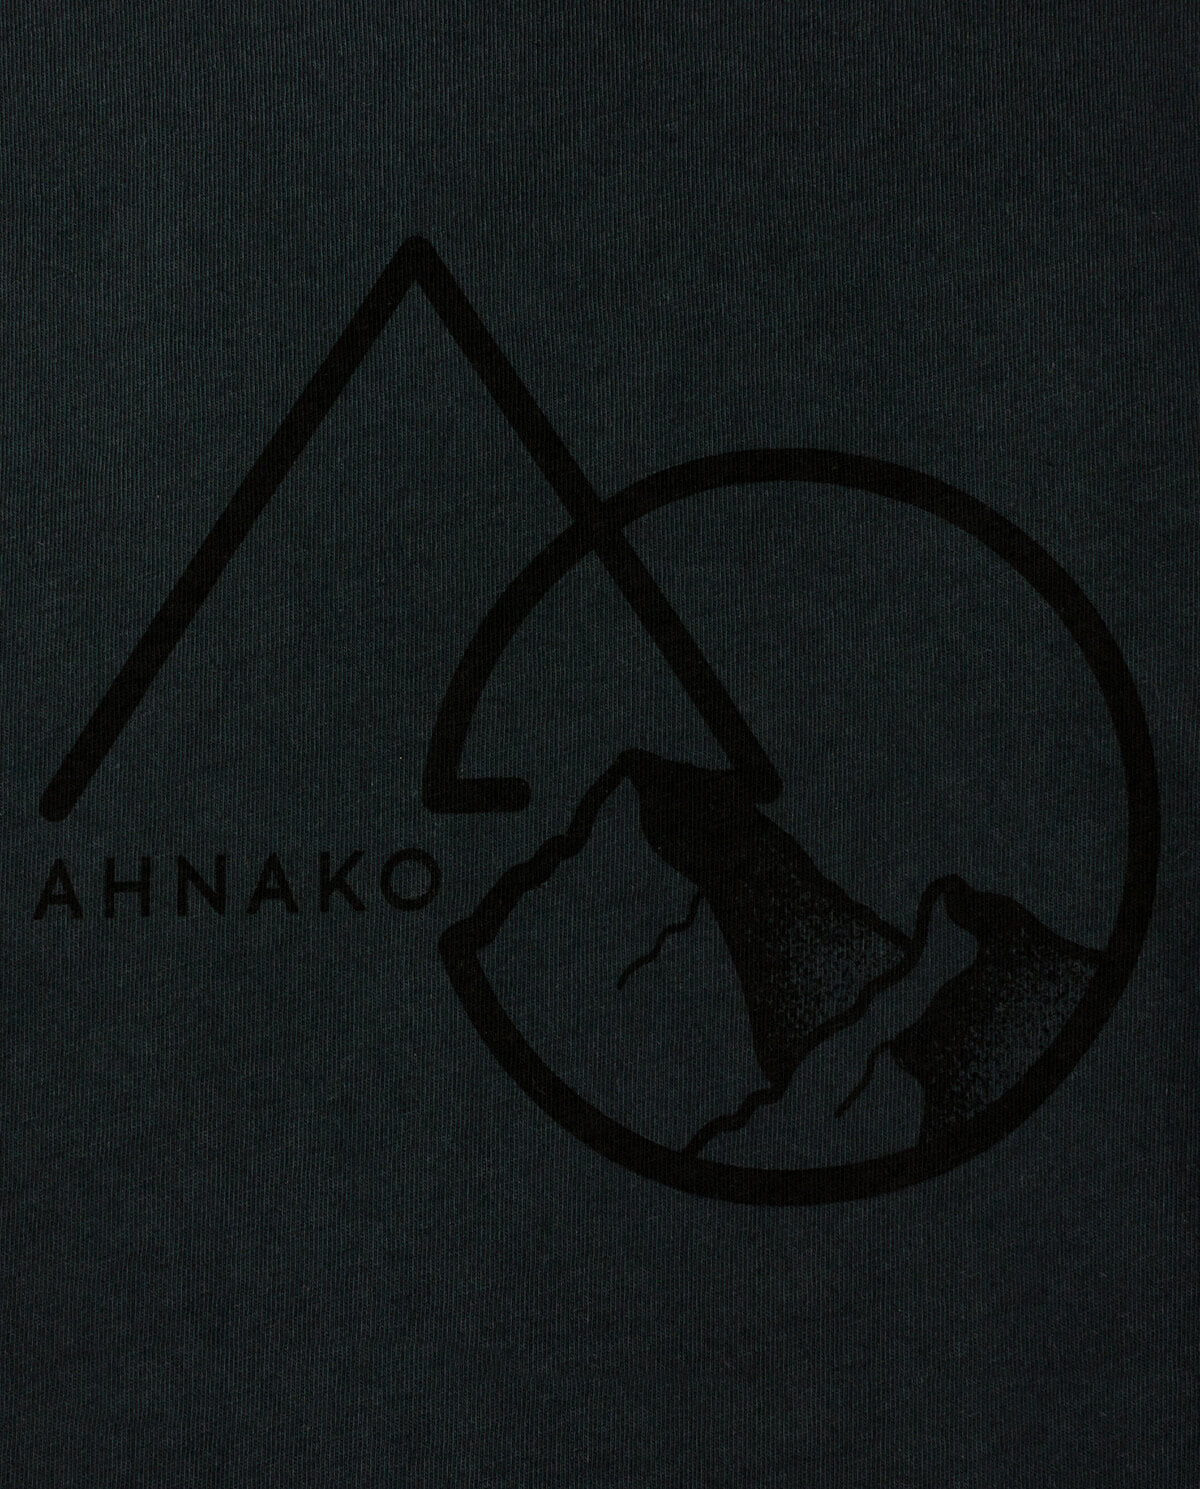 Ahnako Mountains - Vintage Black